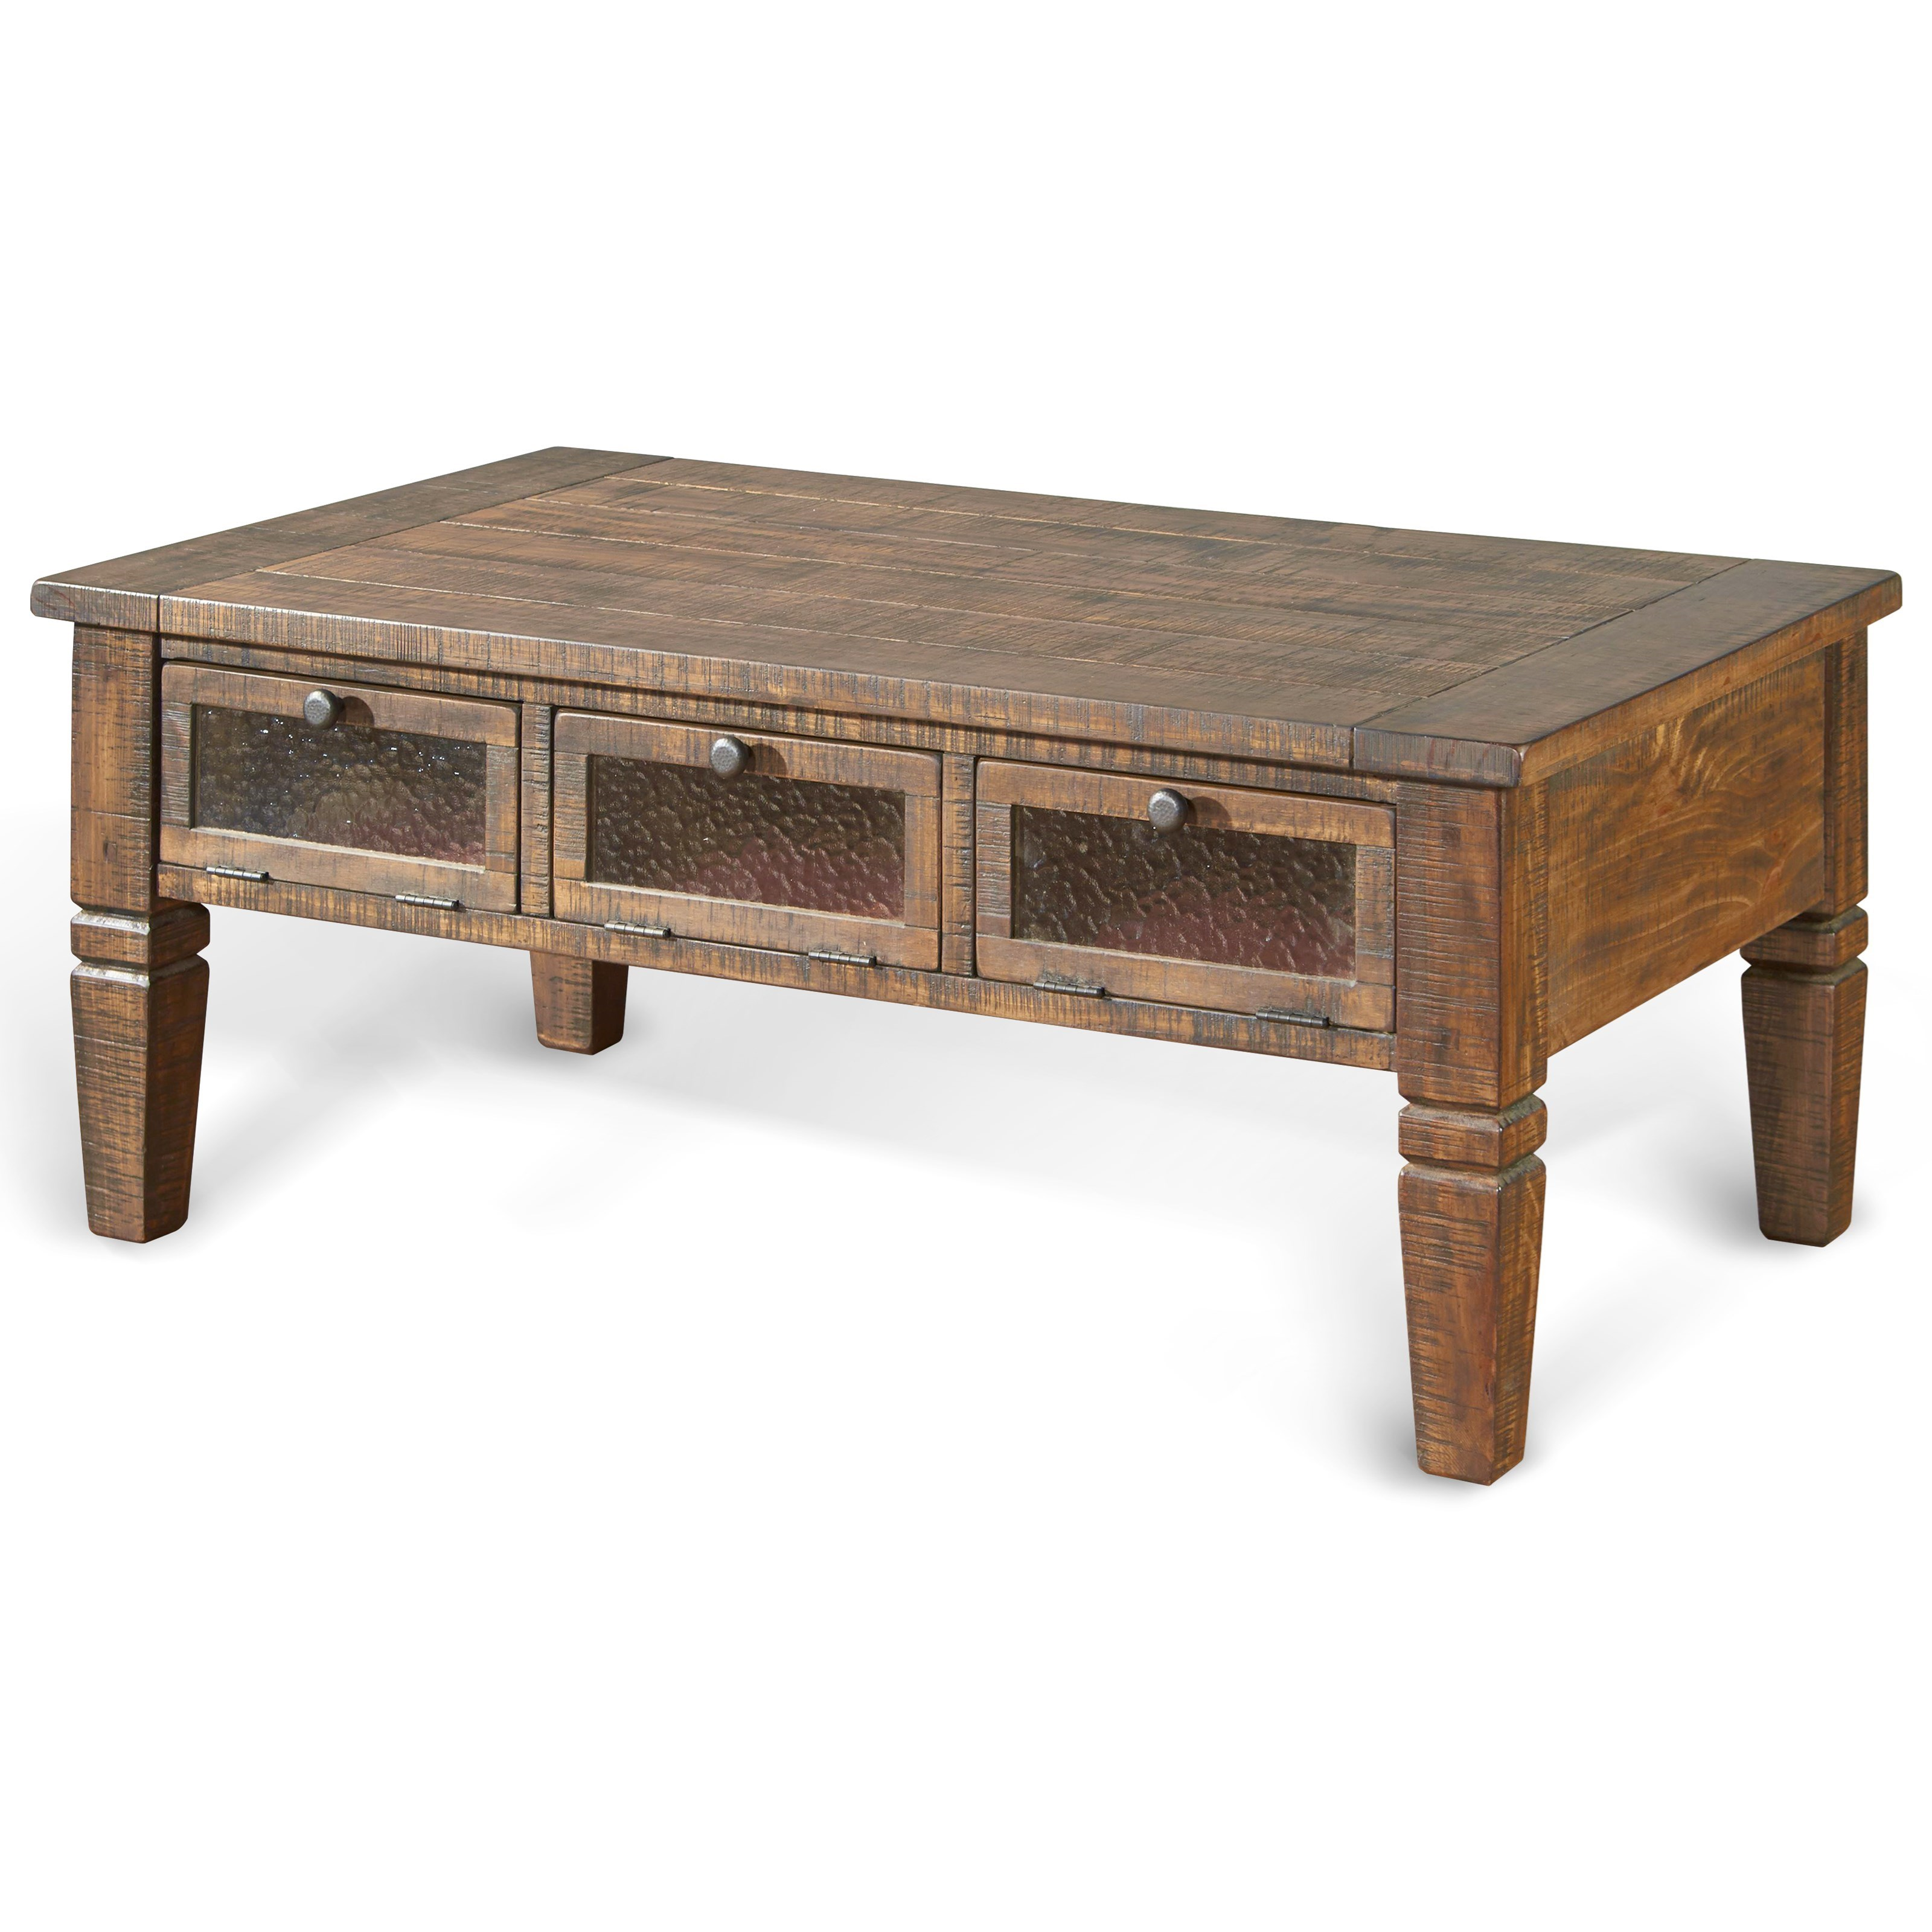 Sunny designs homestead 3252tl c rustic pine coffee table for Homestead furniture and appliances